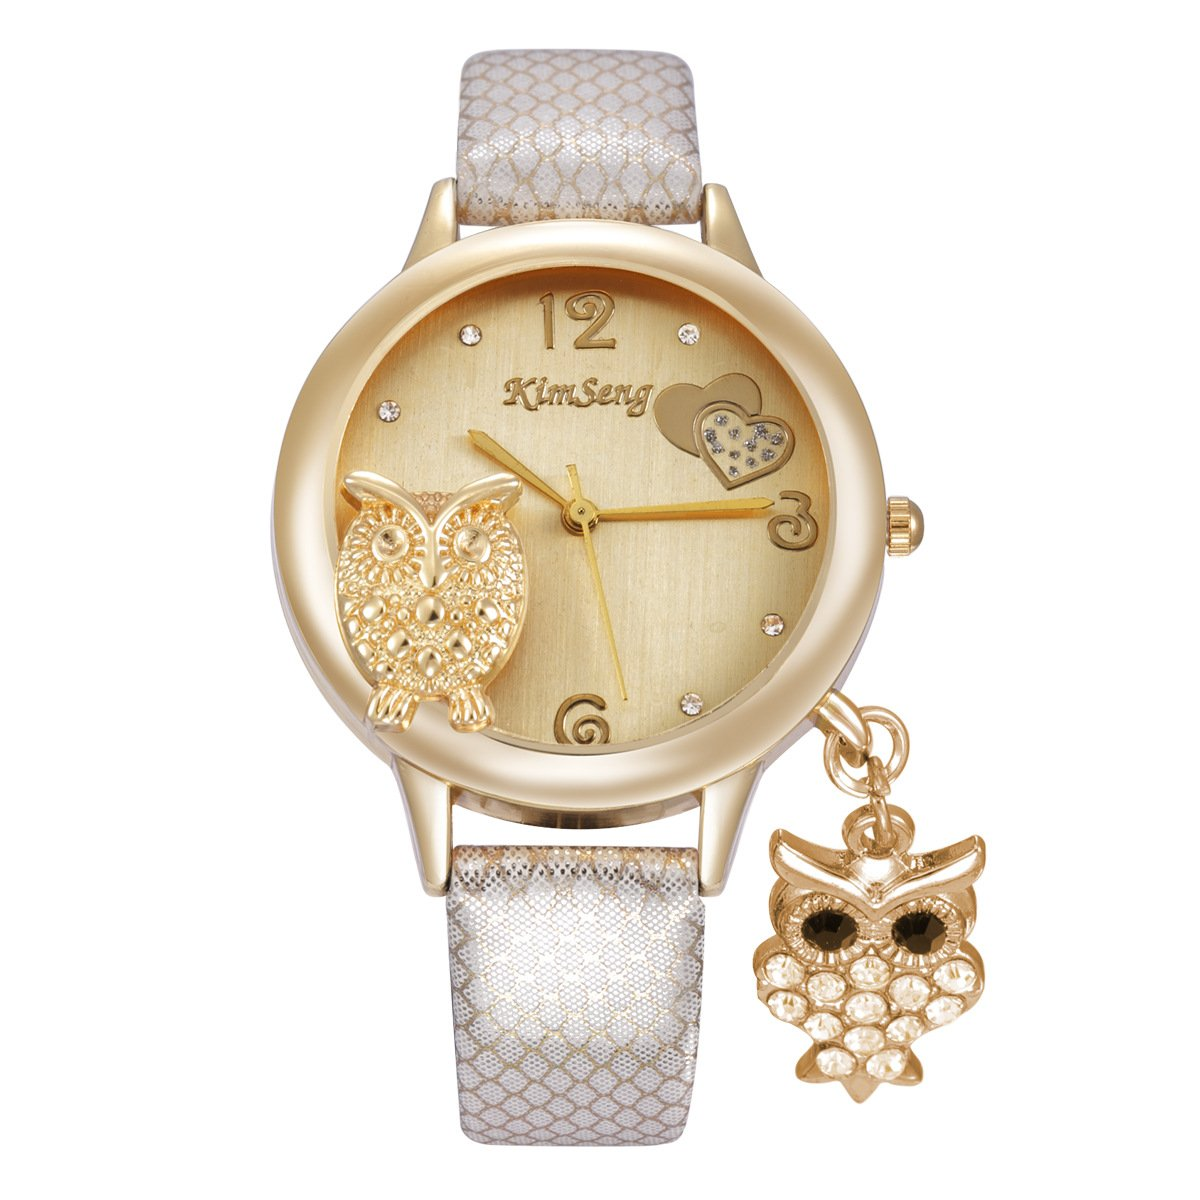 Cute Owl Watches for Women Girls - Dress Animal Pendant Watches Mesh Pattern Band Ladies Watches, White